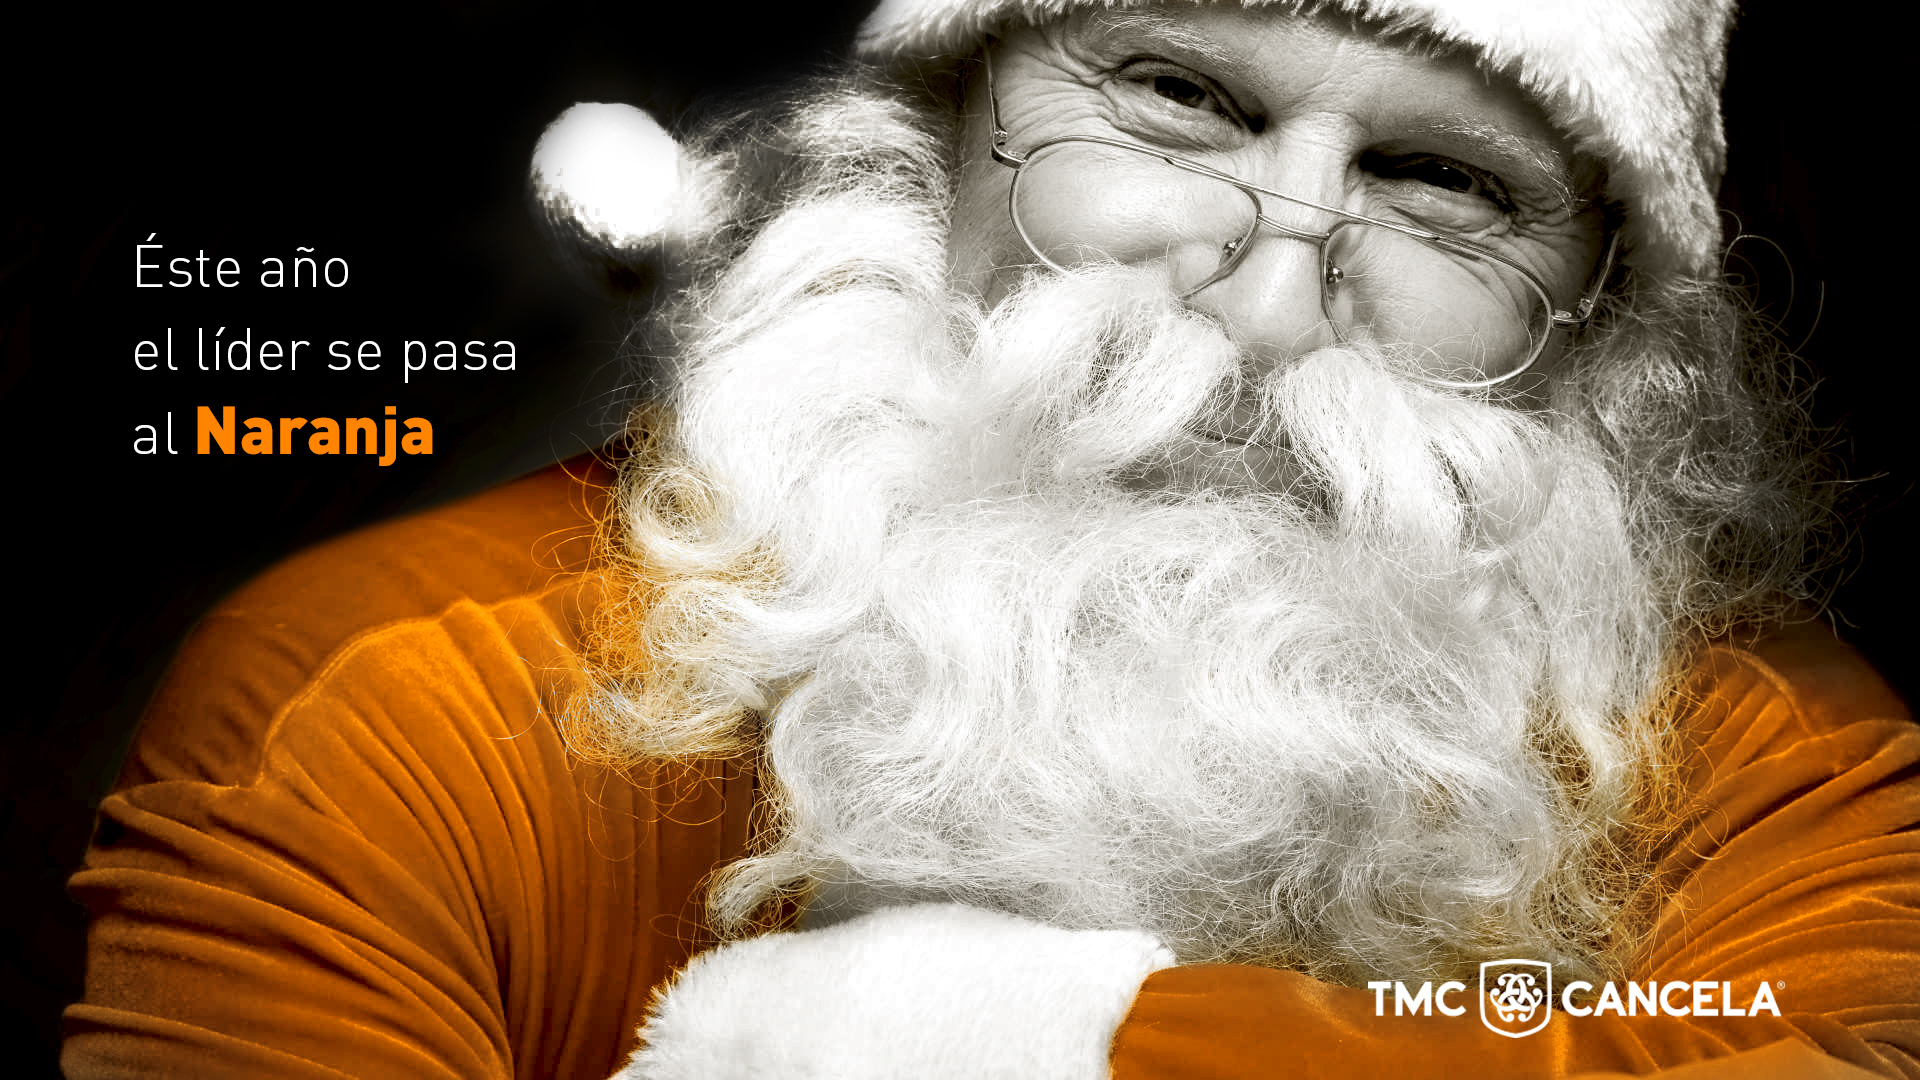 TMC CANCELA WISHES YOU HAPPY HOLIDAYS